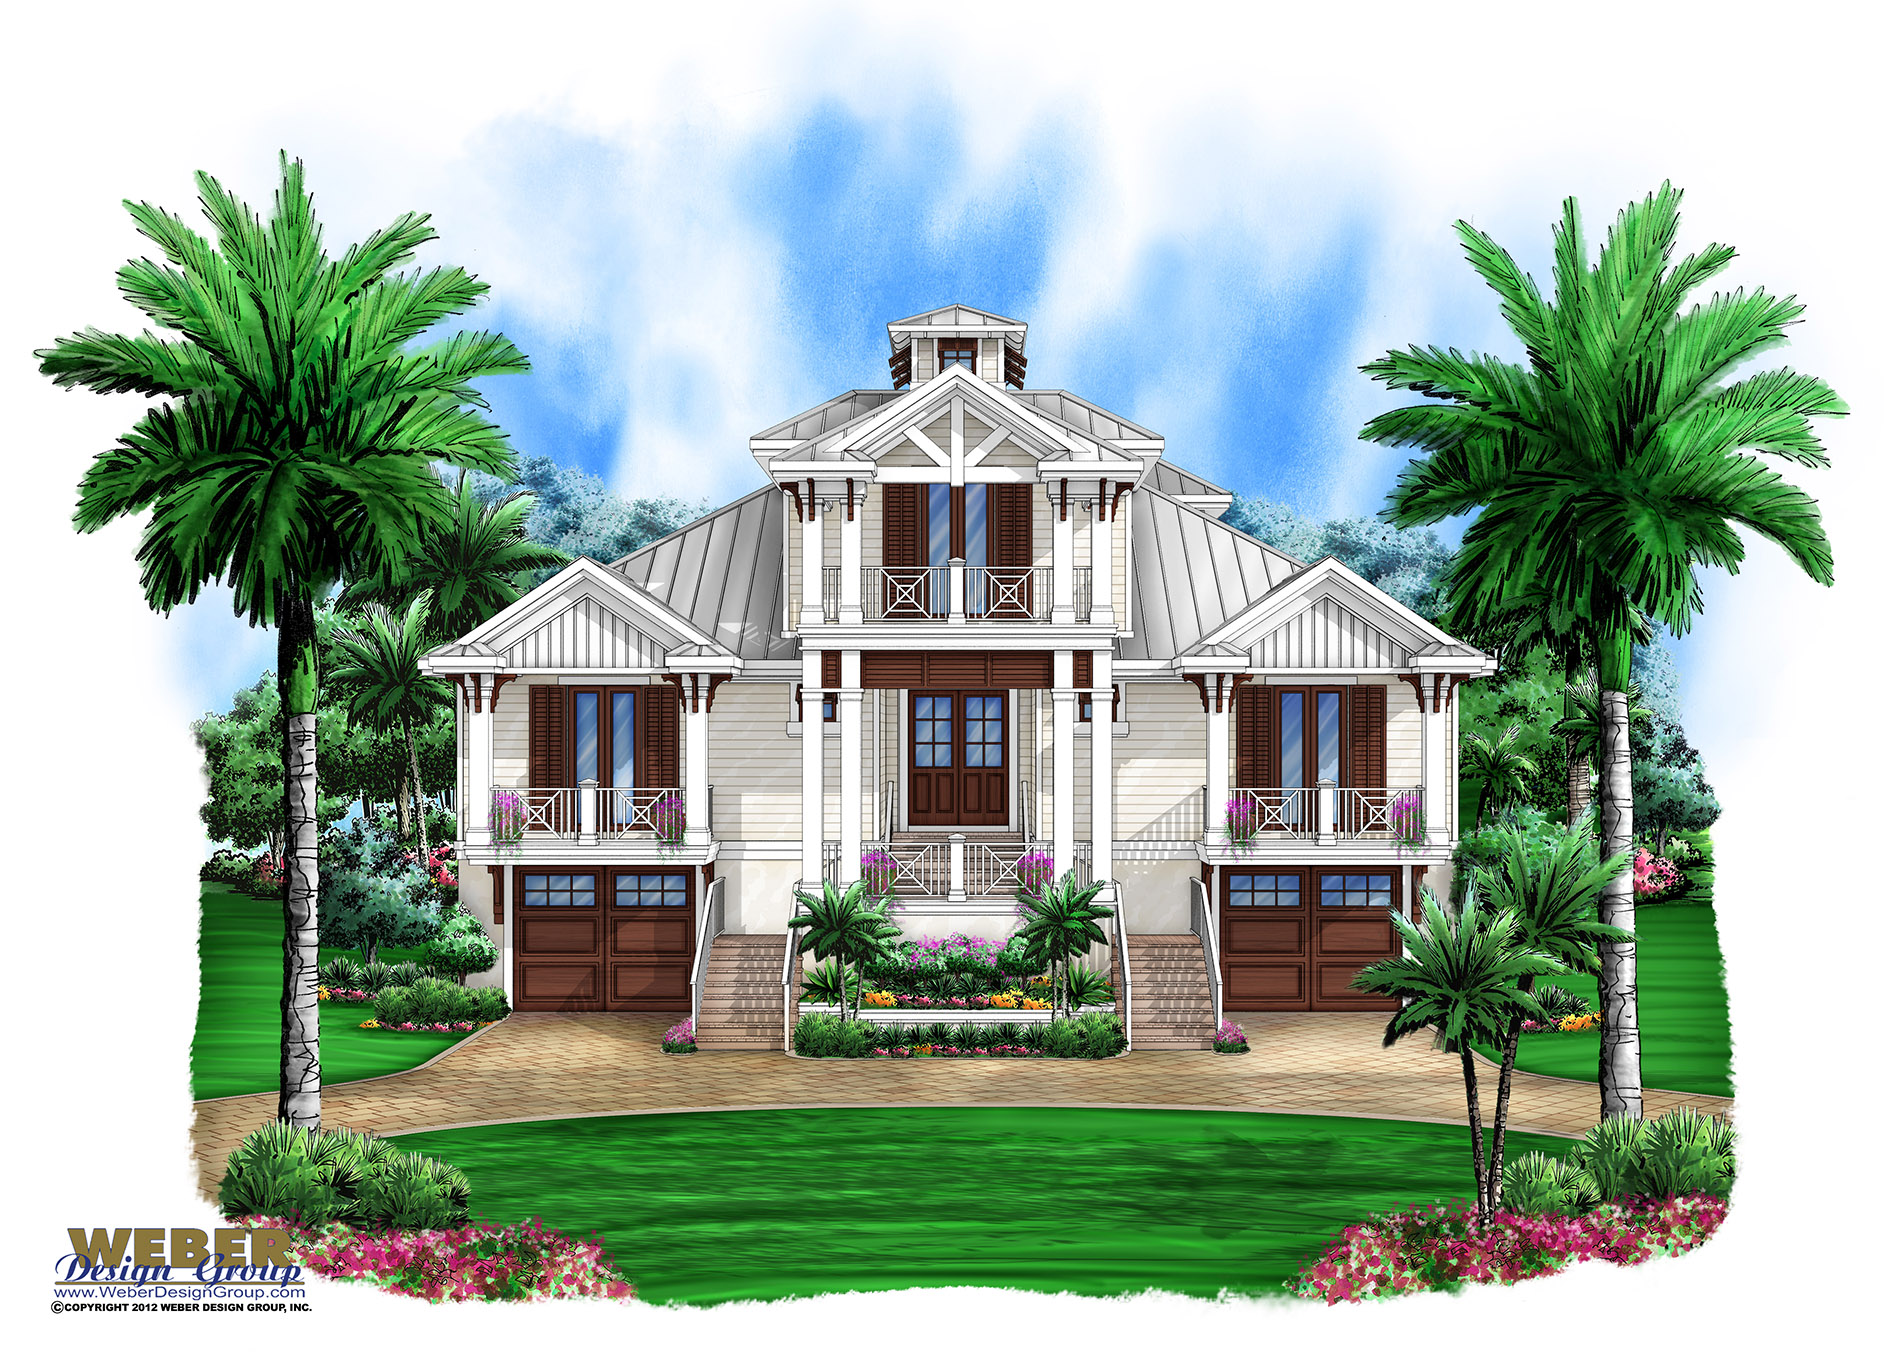 3 Story Old Florida House Plan Beach Outdoor Living Lanai Pool Detail